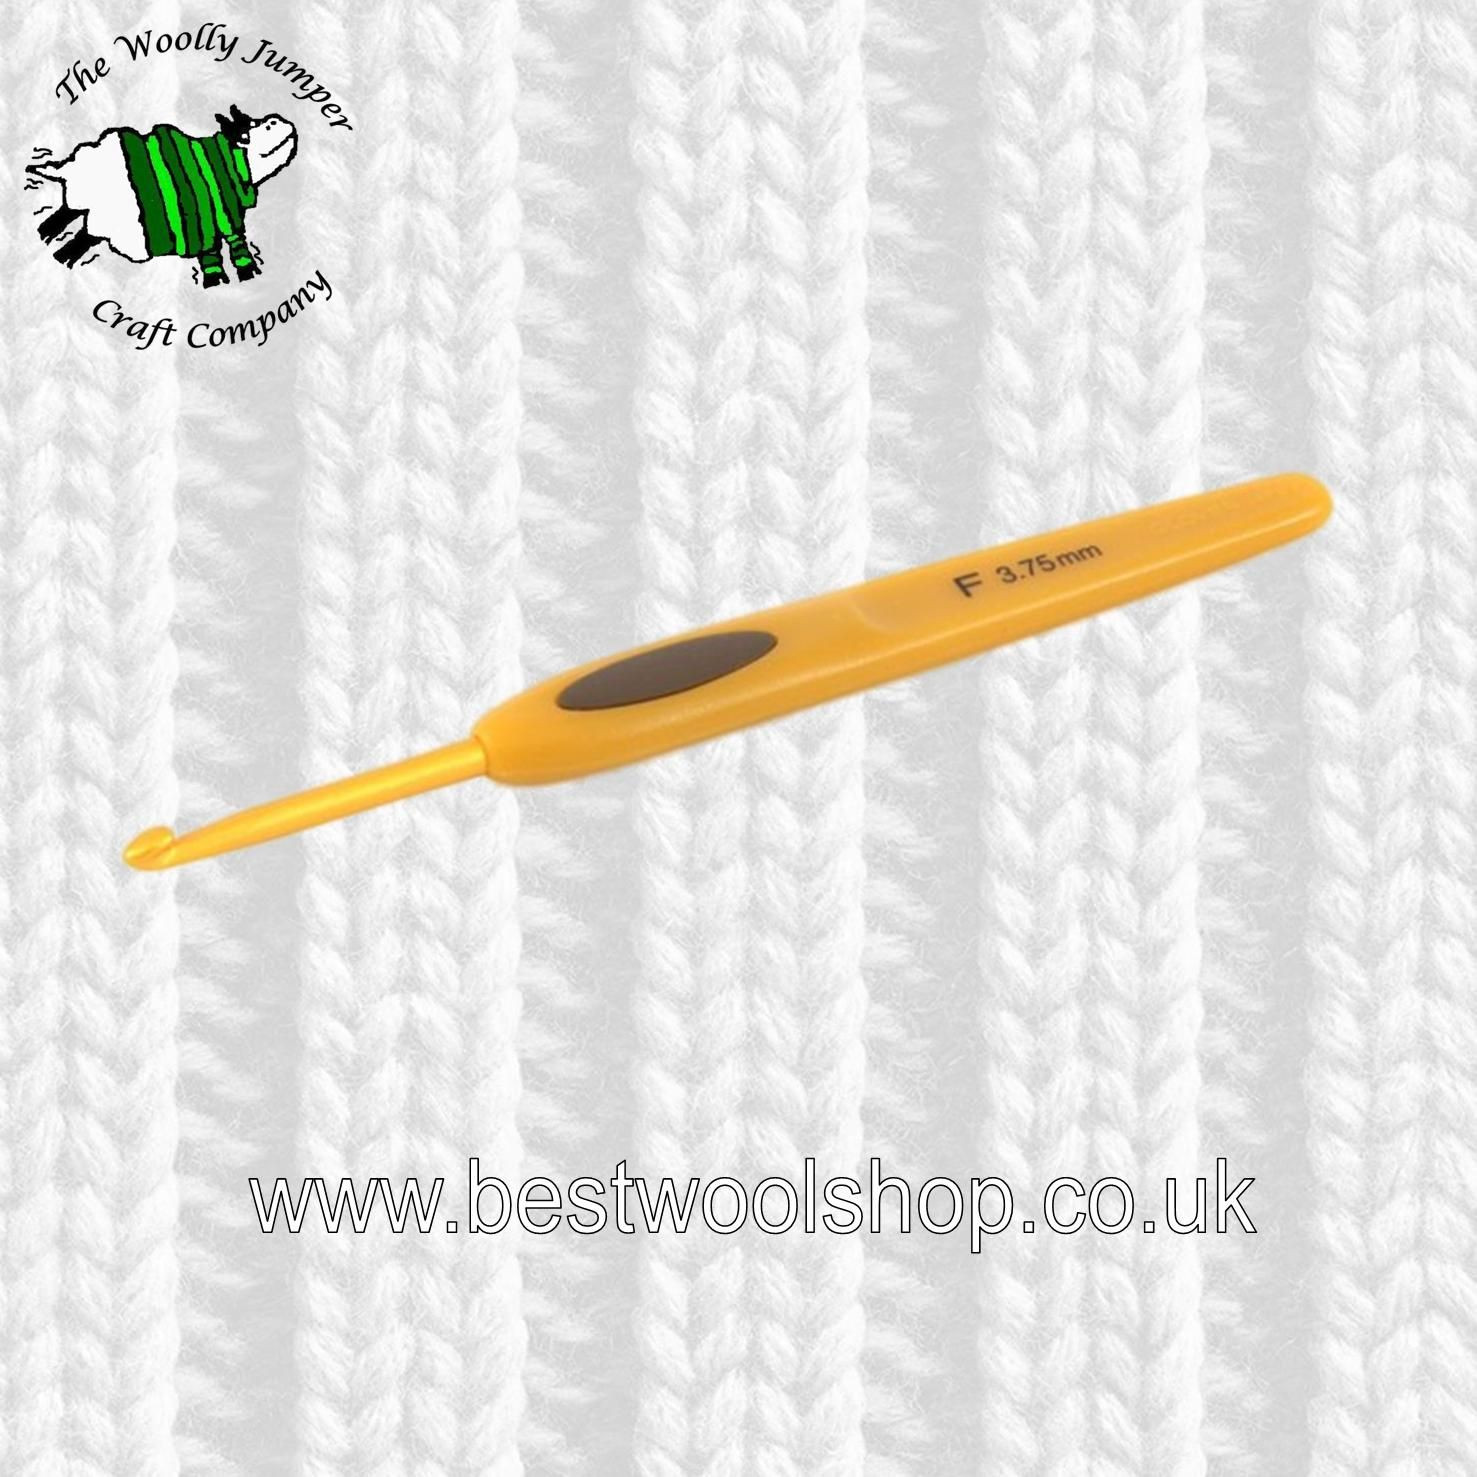 Elegant 3 75 Mm Clover soft touch Crochet Hook F Clover soft touch Crochet Hooks Of Unique Clover soft touch Crochet Hook Size F6 3 75mm Clover soft touch Crochet Hooks